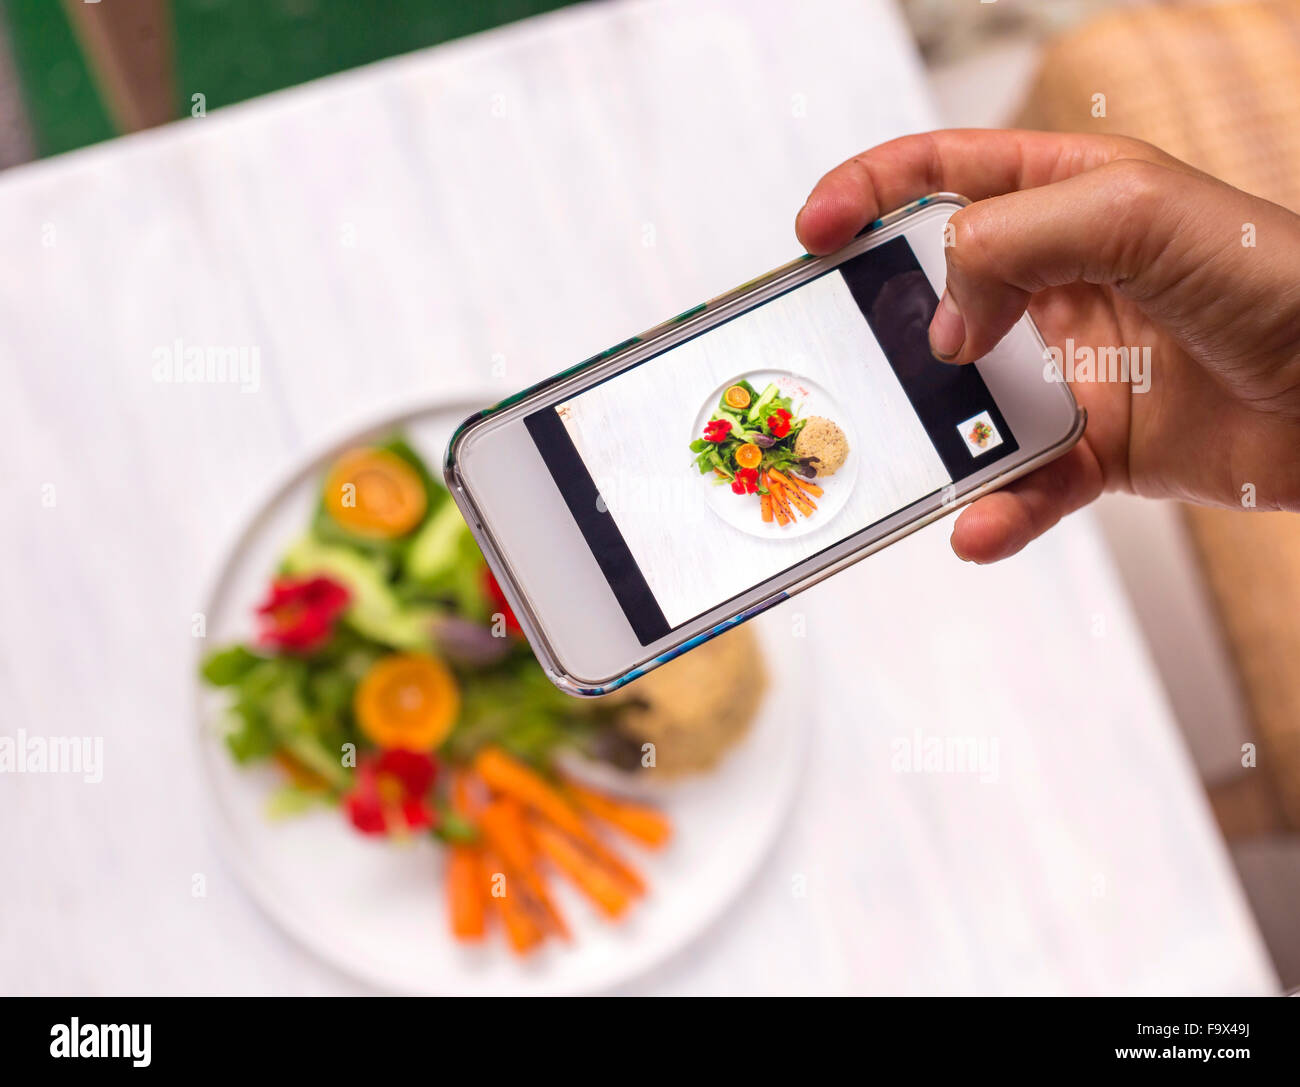 Woman taking a photo of dish with vegetables and quinoa, close-up - Stock Image